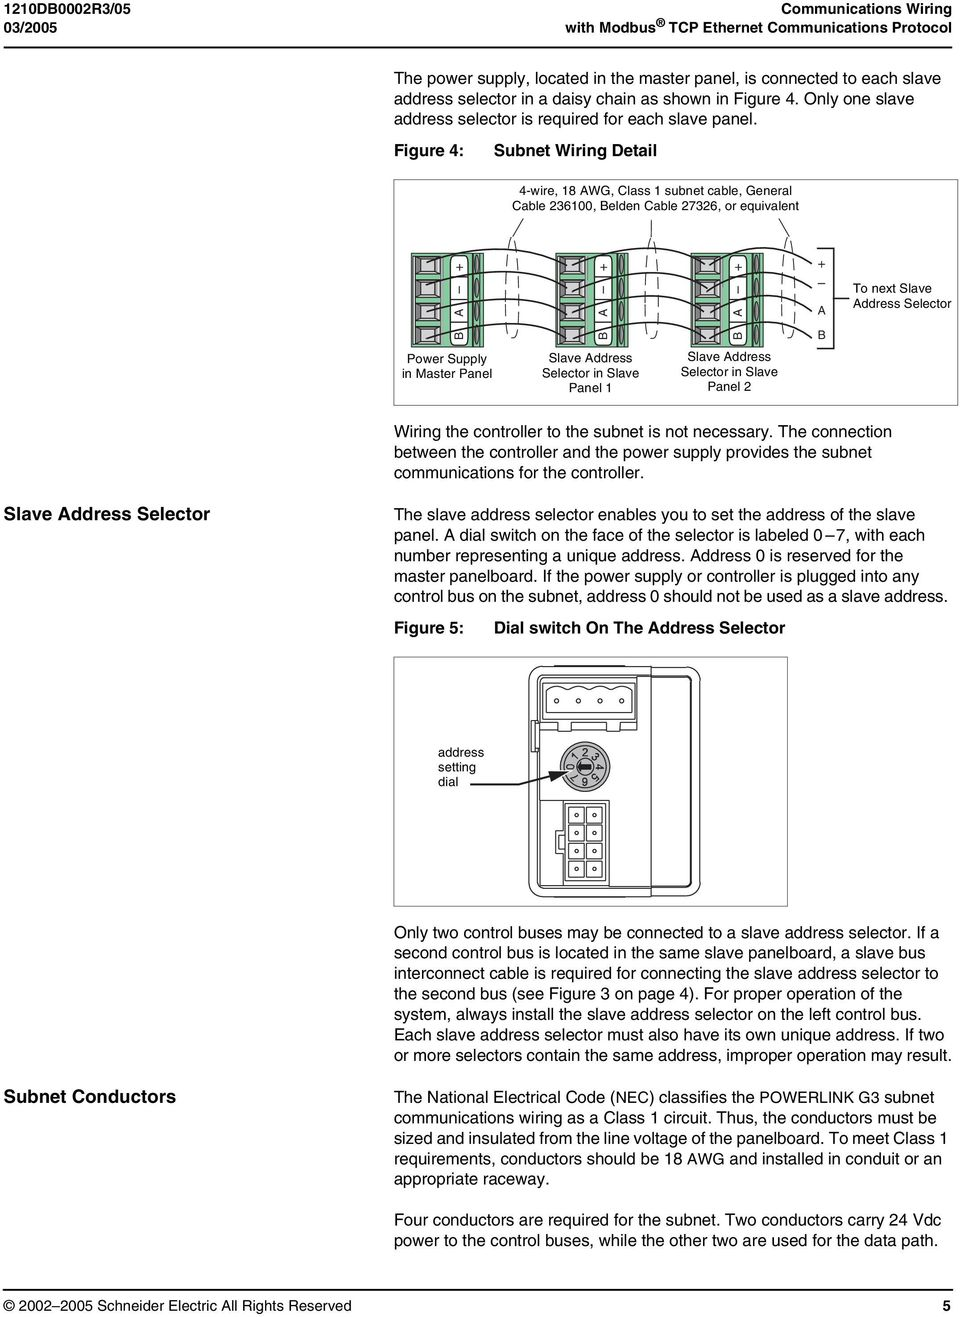 data bulletin communications wiring for powerlink g3 systems class rh docplayer net